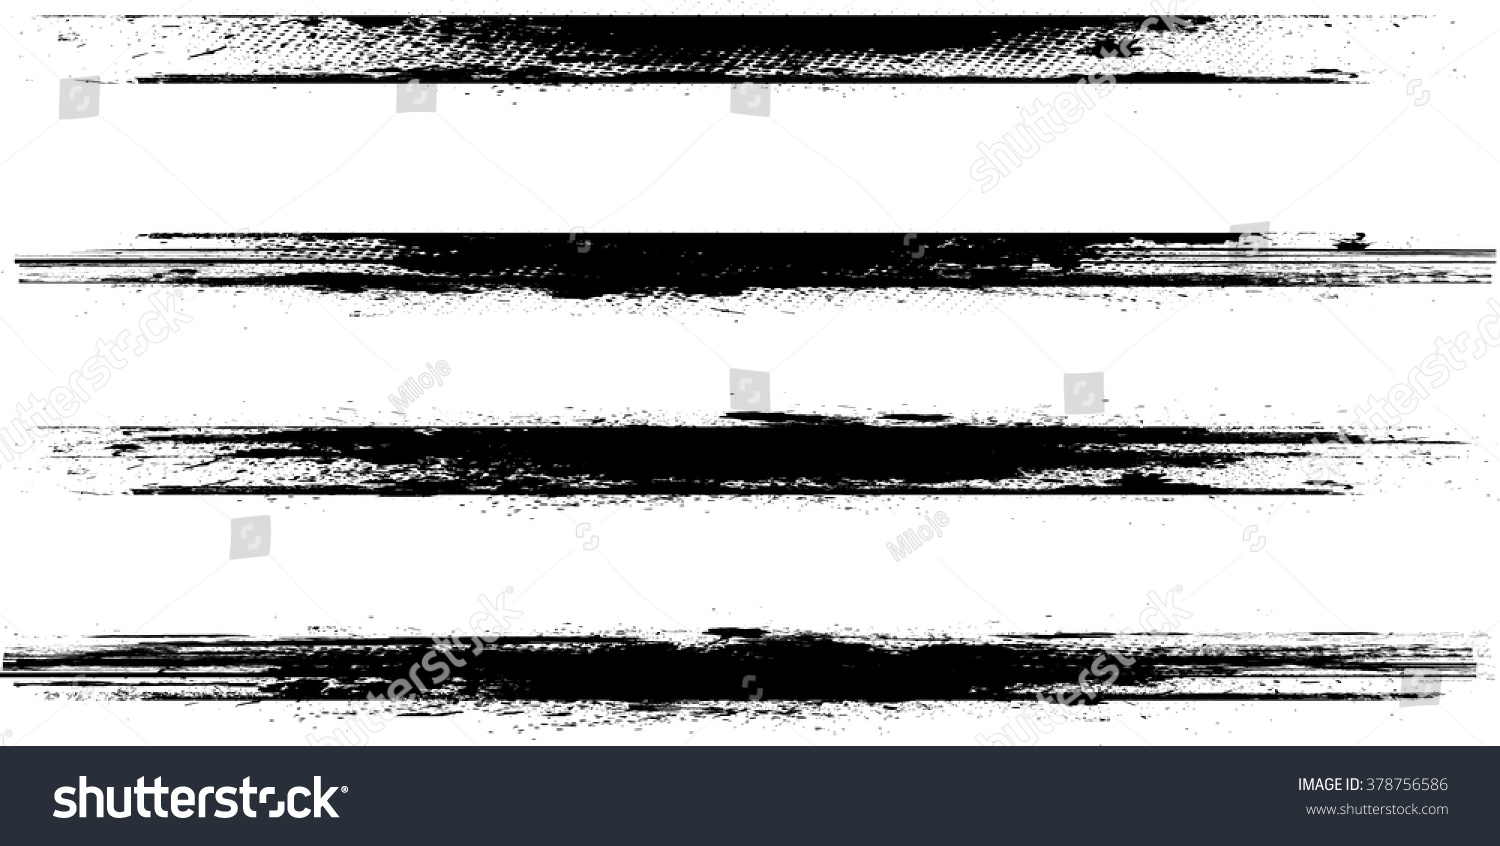 Royalty Free Brush Stroke Collection Grunge Lines